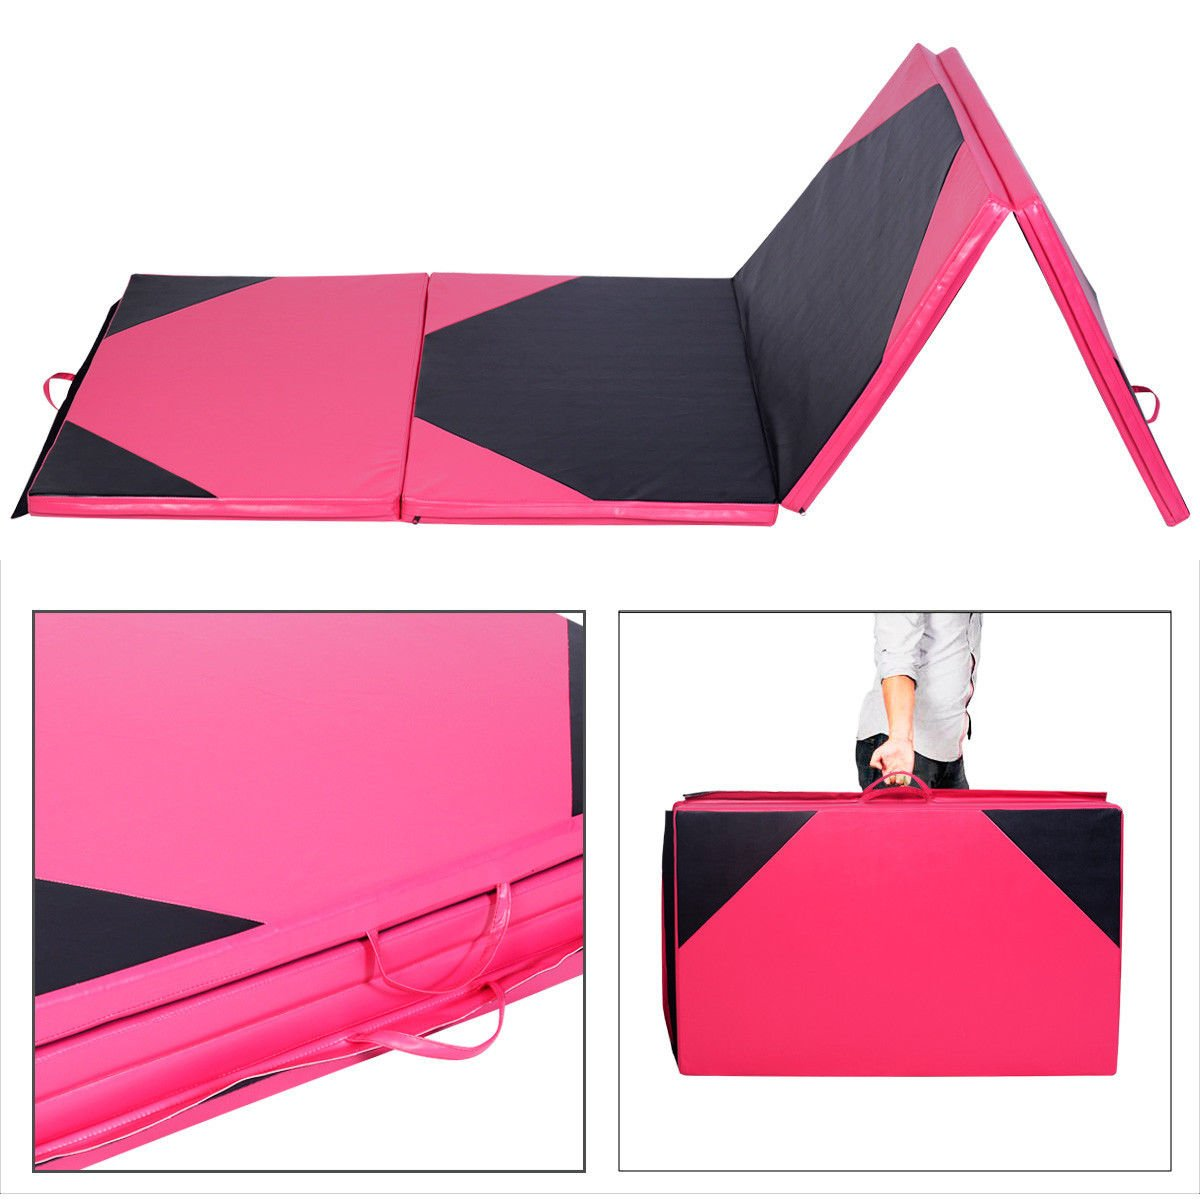 track tumbling mats air pink training beam balance gymnastics products mat inflatable